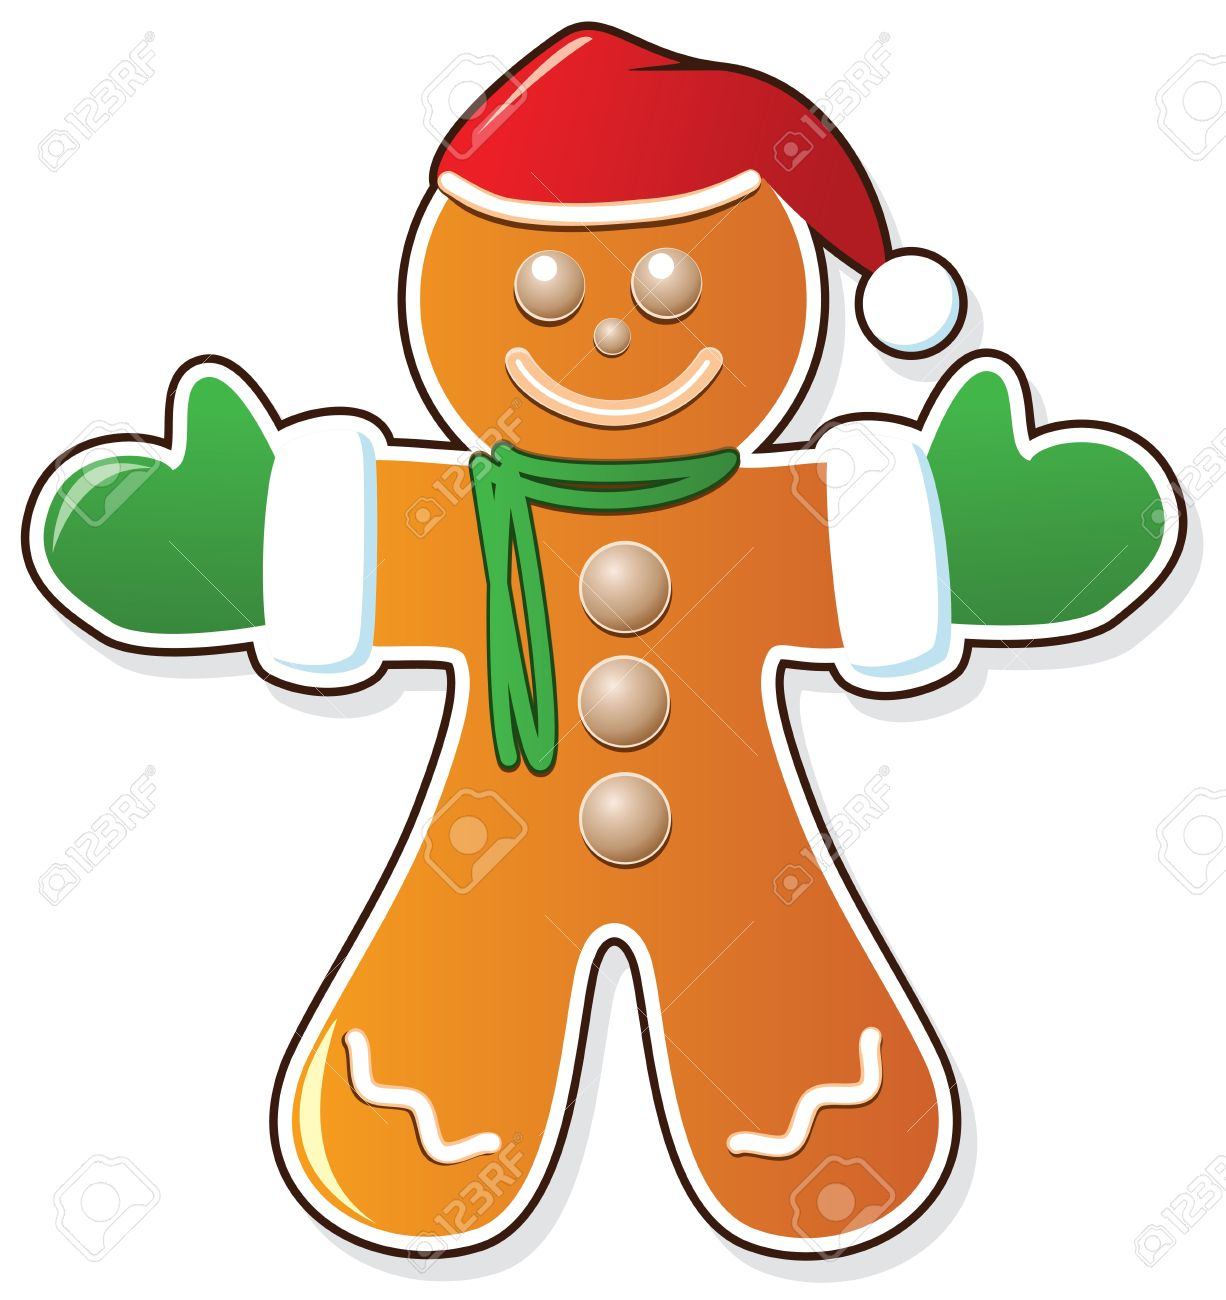 1226x1300 Vector Gingerbread Cookie In Santa's Claus Hat And Mittens Royalty